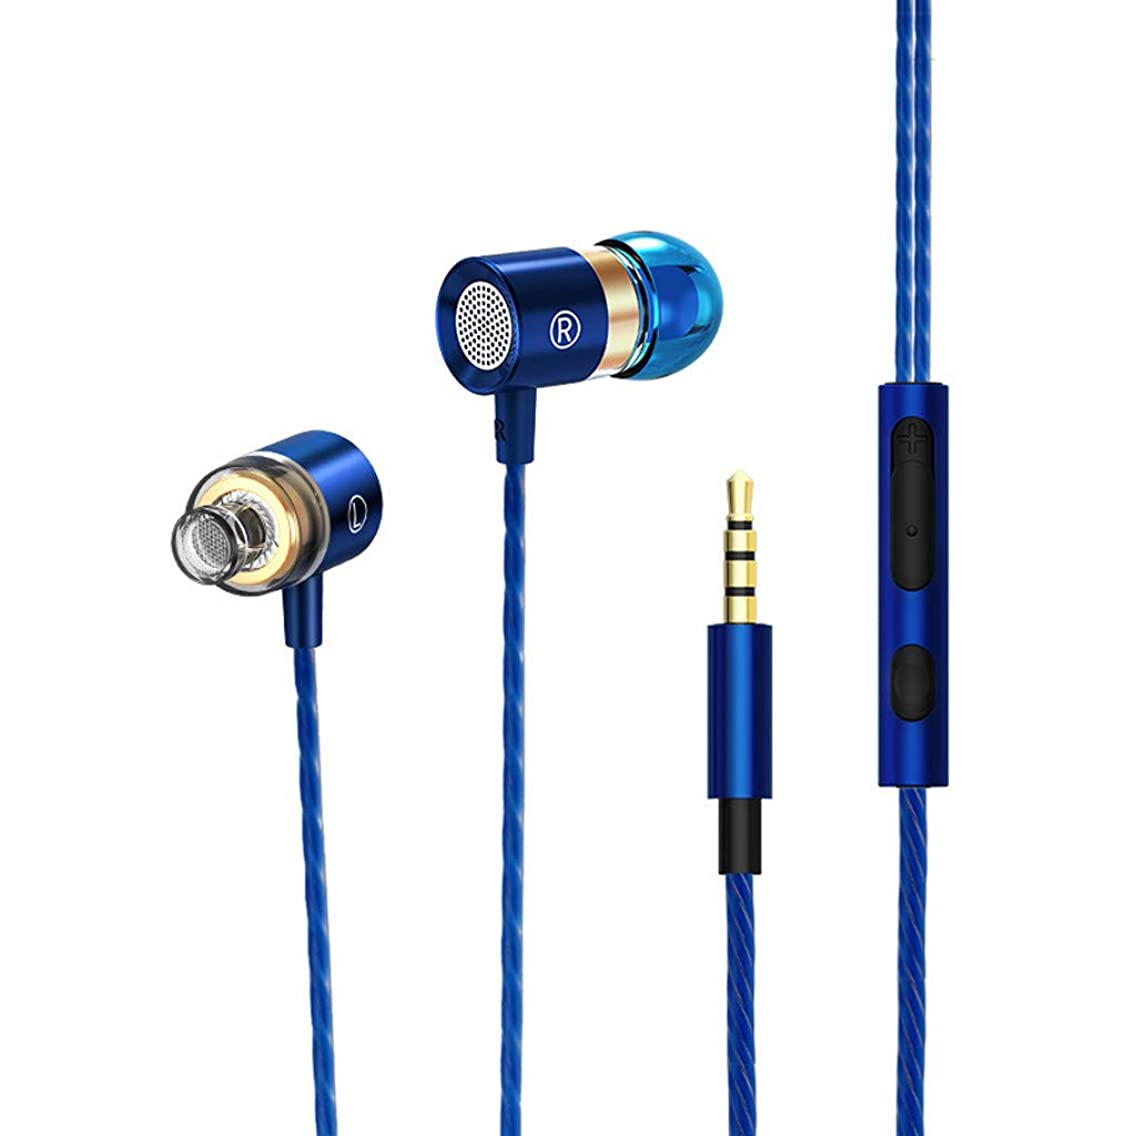 SHUDAGE 3.5mm Wired Metal Earbuds - Stereo In-Ear Heavy Bass Earphones Ergonomic Design Remote Control Earpieces with Mic for iPhone\Samsung Galaxy\Sony\LG\Huawei\Xiaomi Android & IOS Devices (blue)